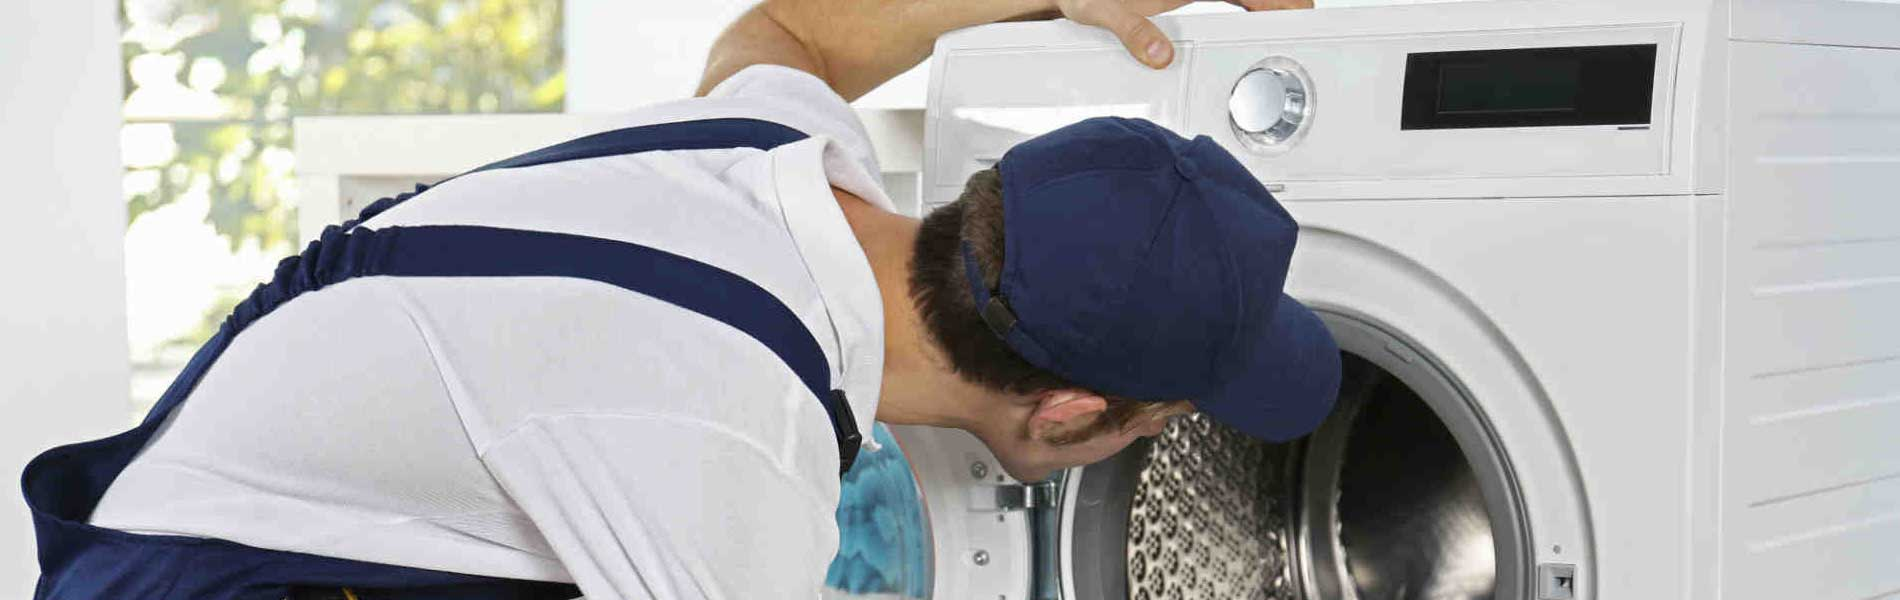 IFB Washing Machine Repair in Chembarambakkam